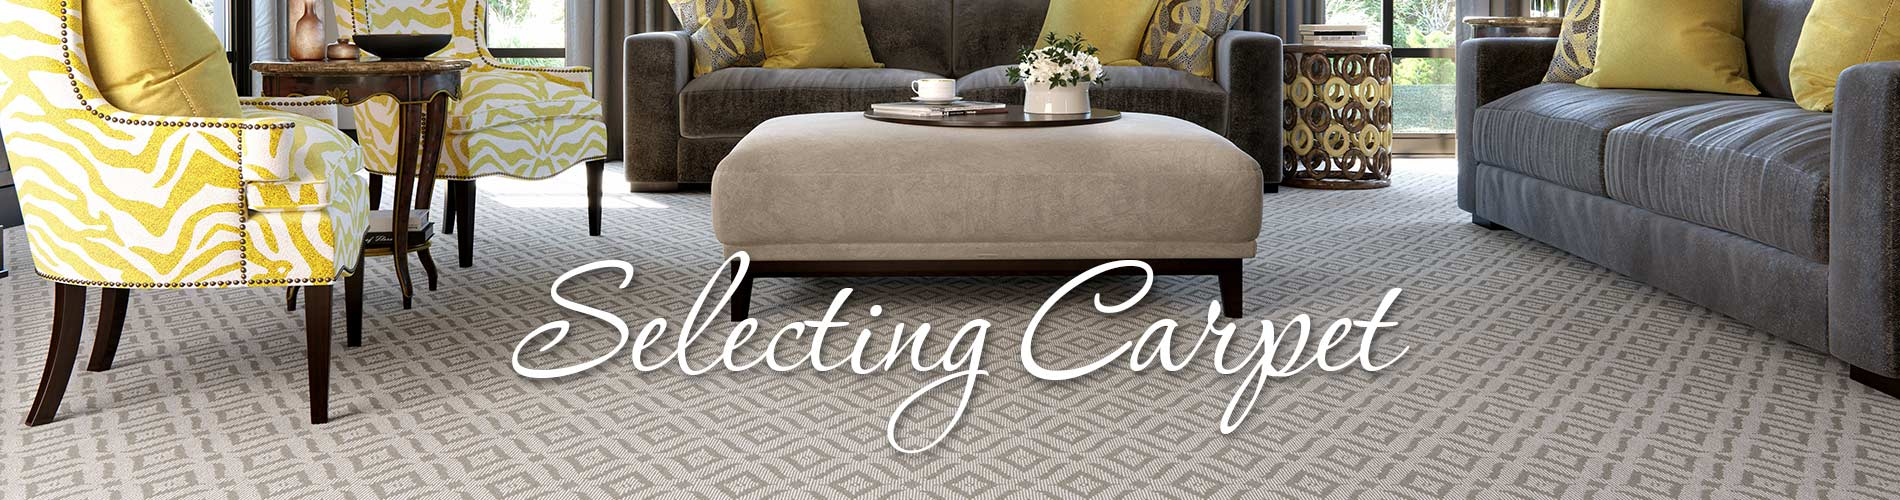 Selecting Carpet